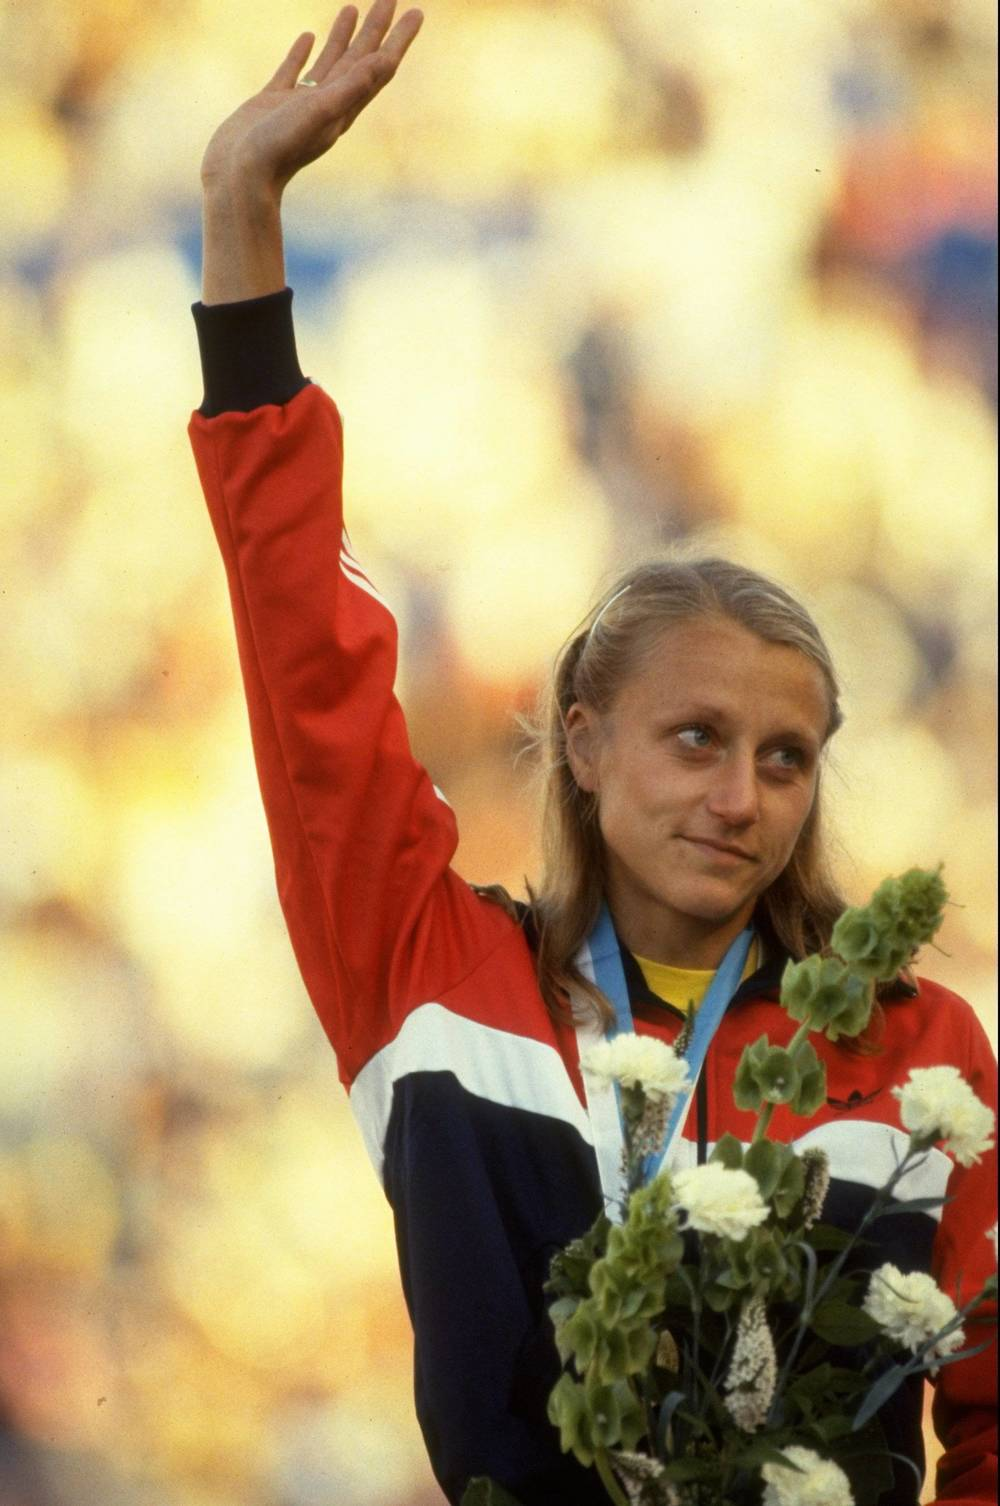 A nine-time winner of the New York City marathon, the Norwegian schoolteacher is credited with bringing women's distance running to an international stage. She set a world record in 1978 in her first NYC marathon, despite it being her first time running the full 26.2 miles. A pioneer of the sport, Waitz organized races, worked as a running coach and a community advocate. In 2007, she created the Active Against Cancer foundation, to sponsor runners and race money for cancer treatment. Waitz passed away from the disease in 2011.